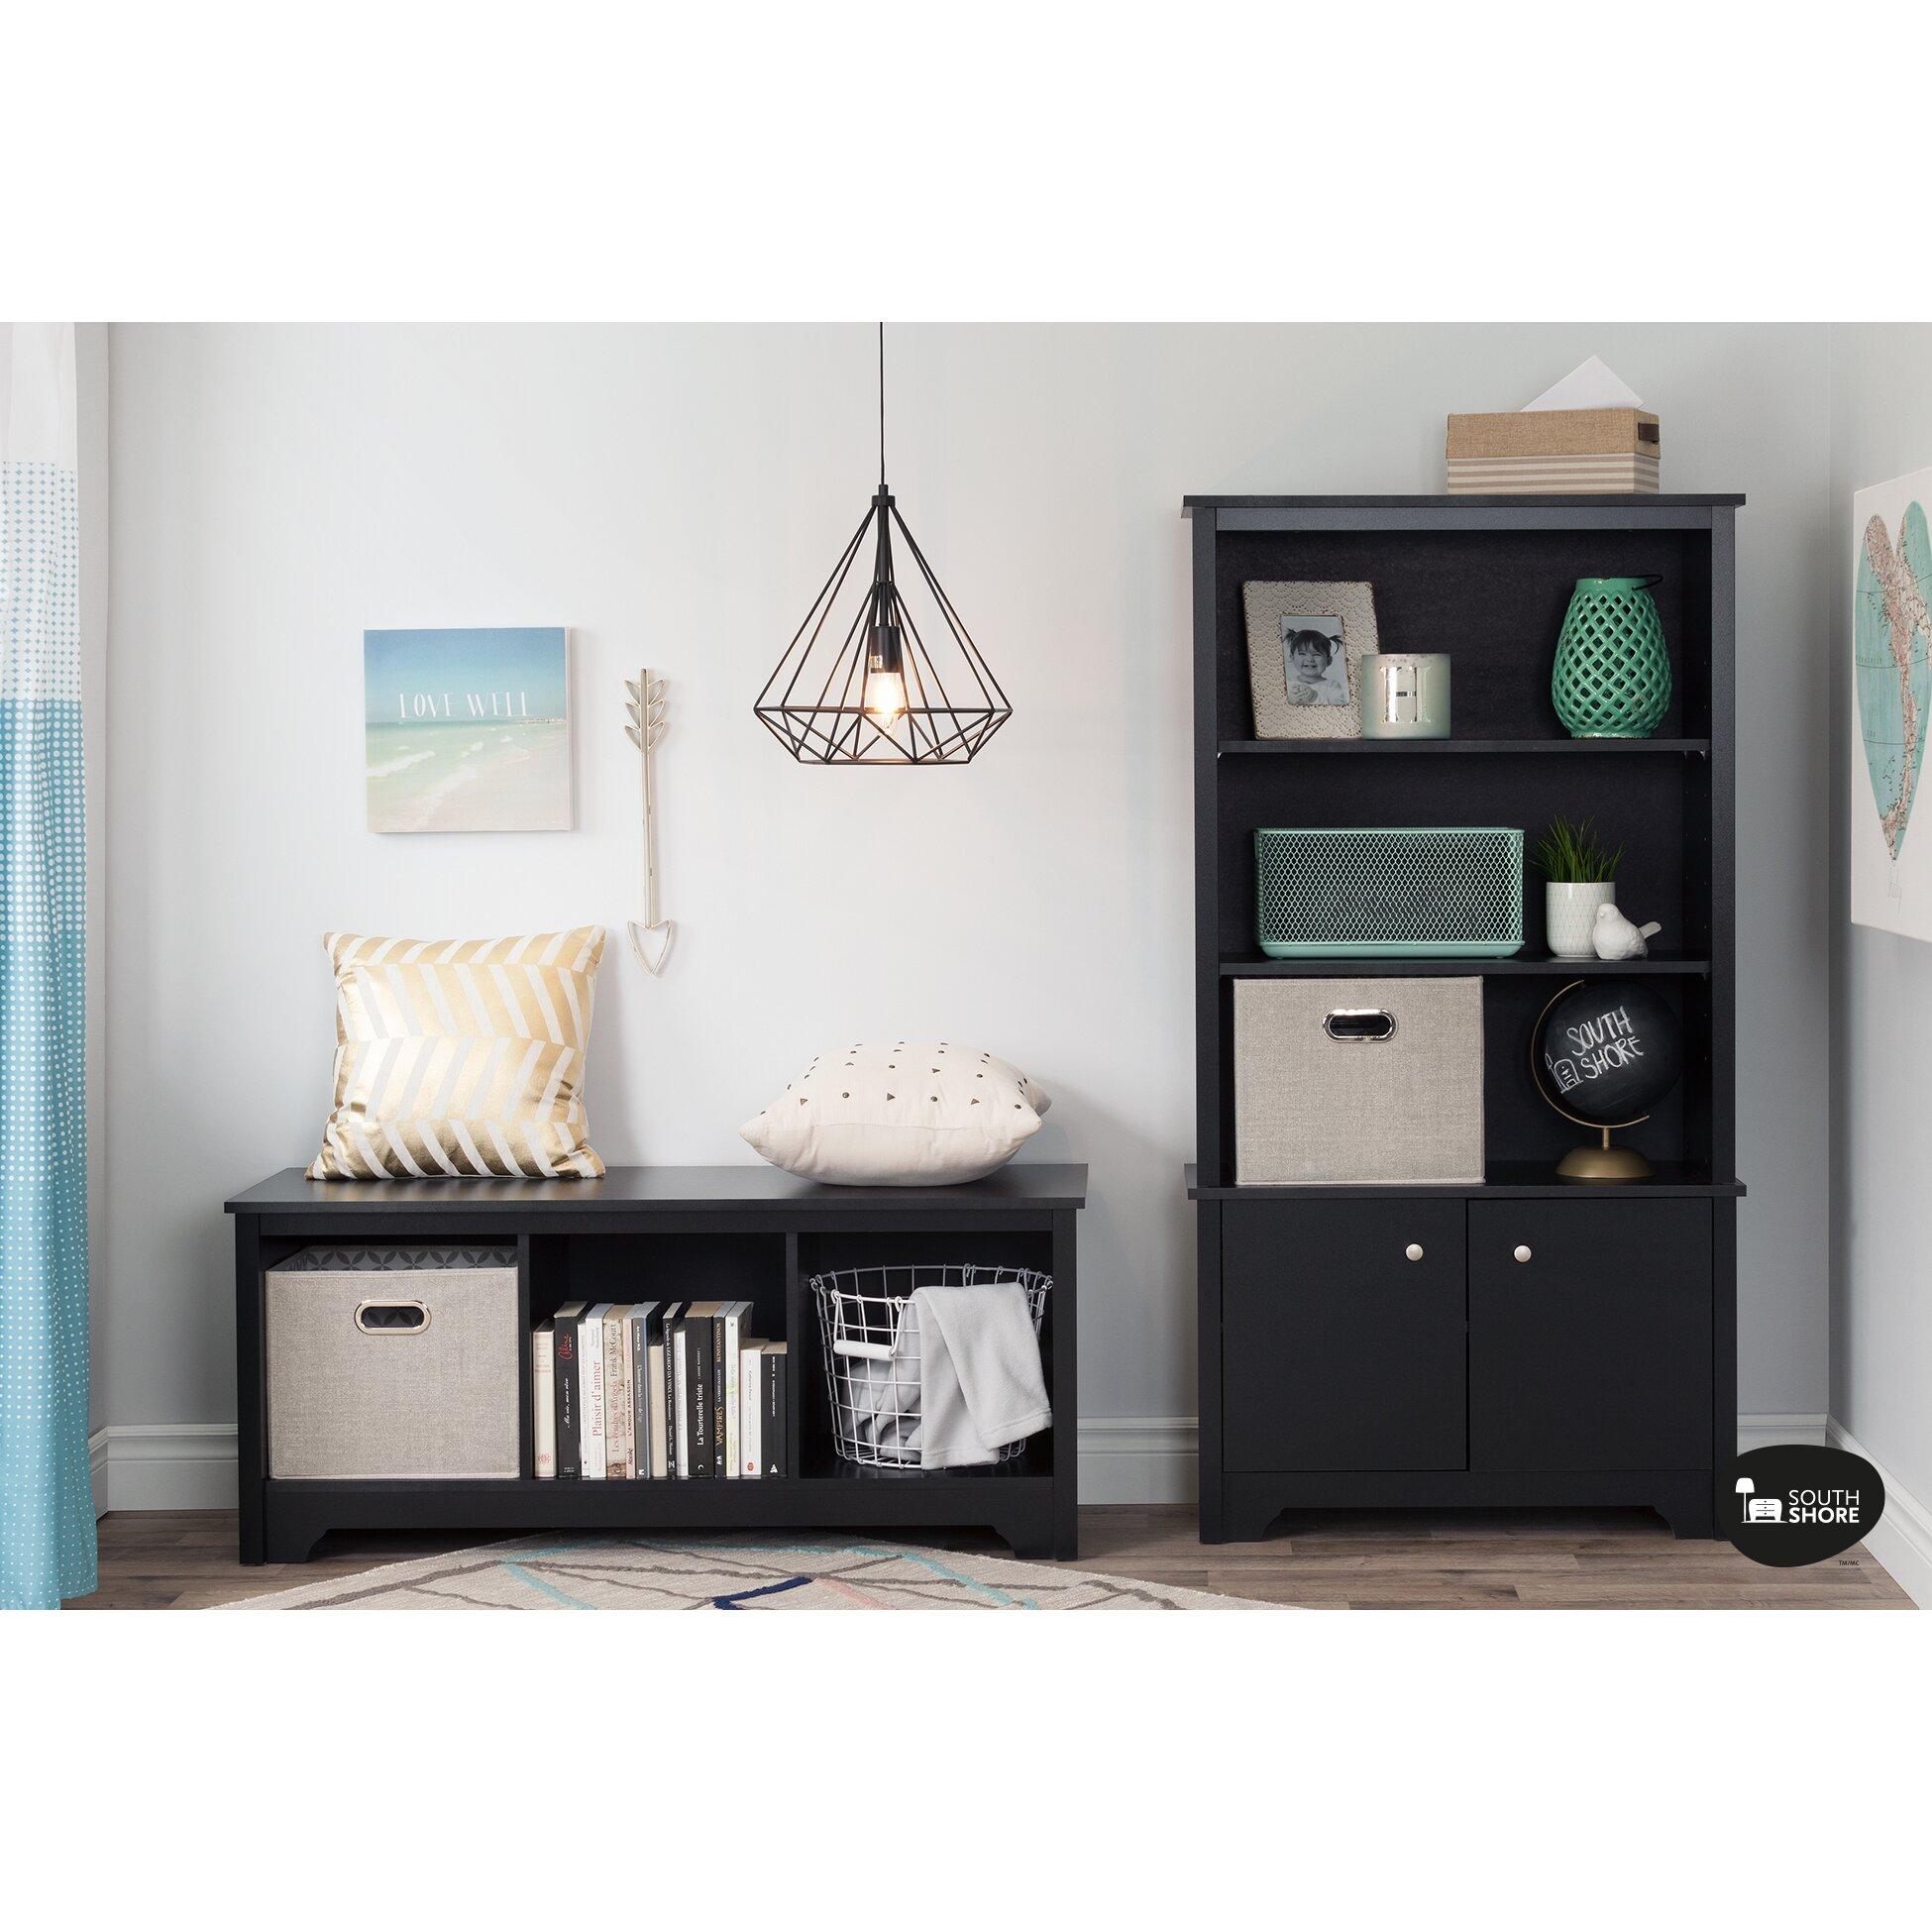 Foyer Mudroom Review : South shore vito particle board storage entryway bench